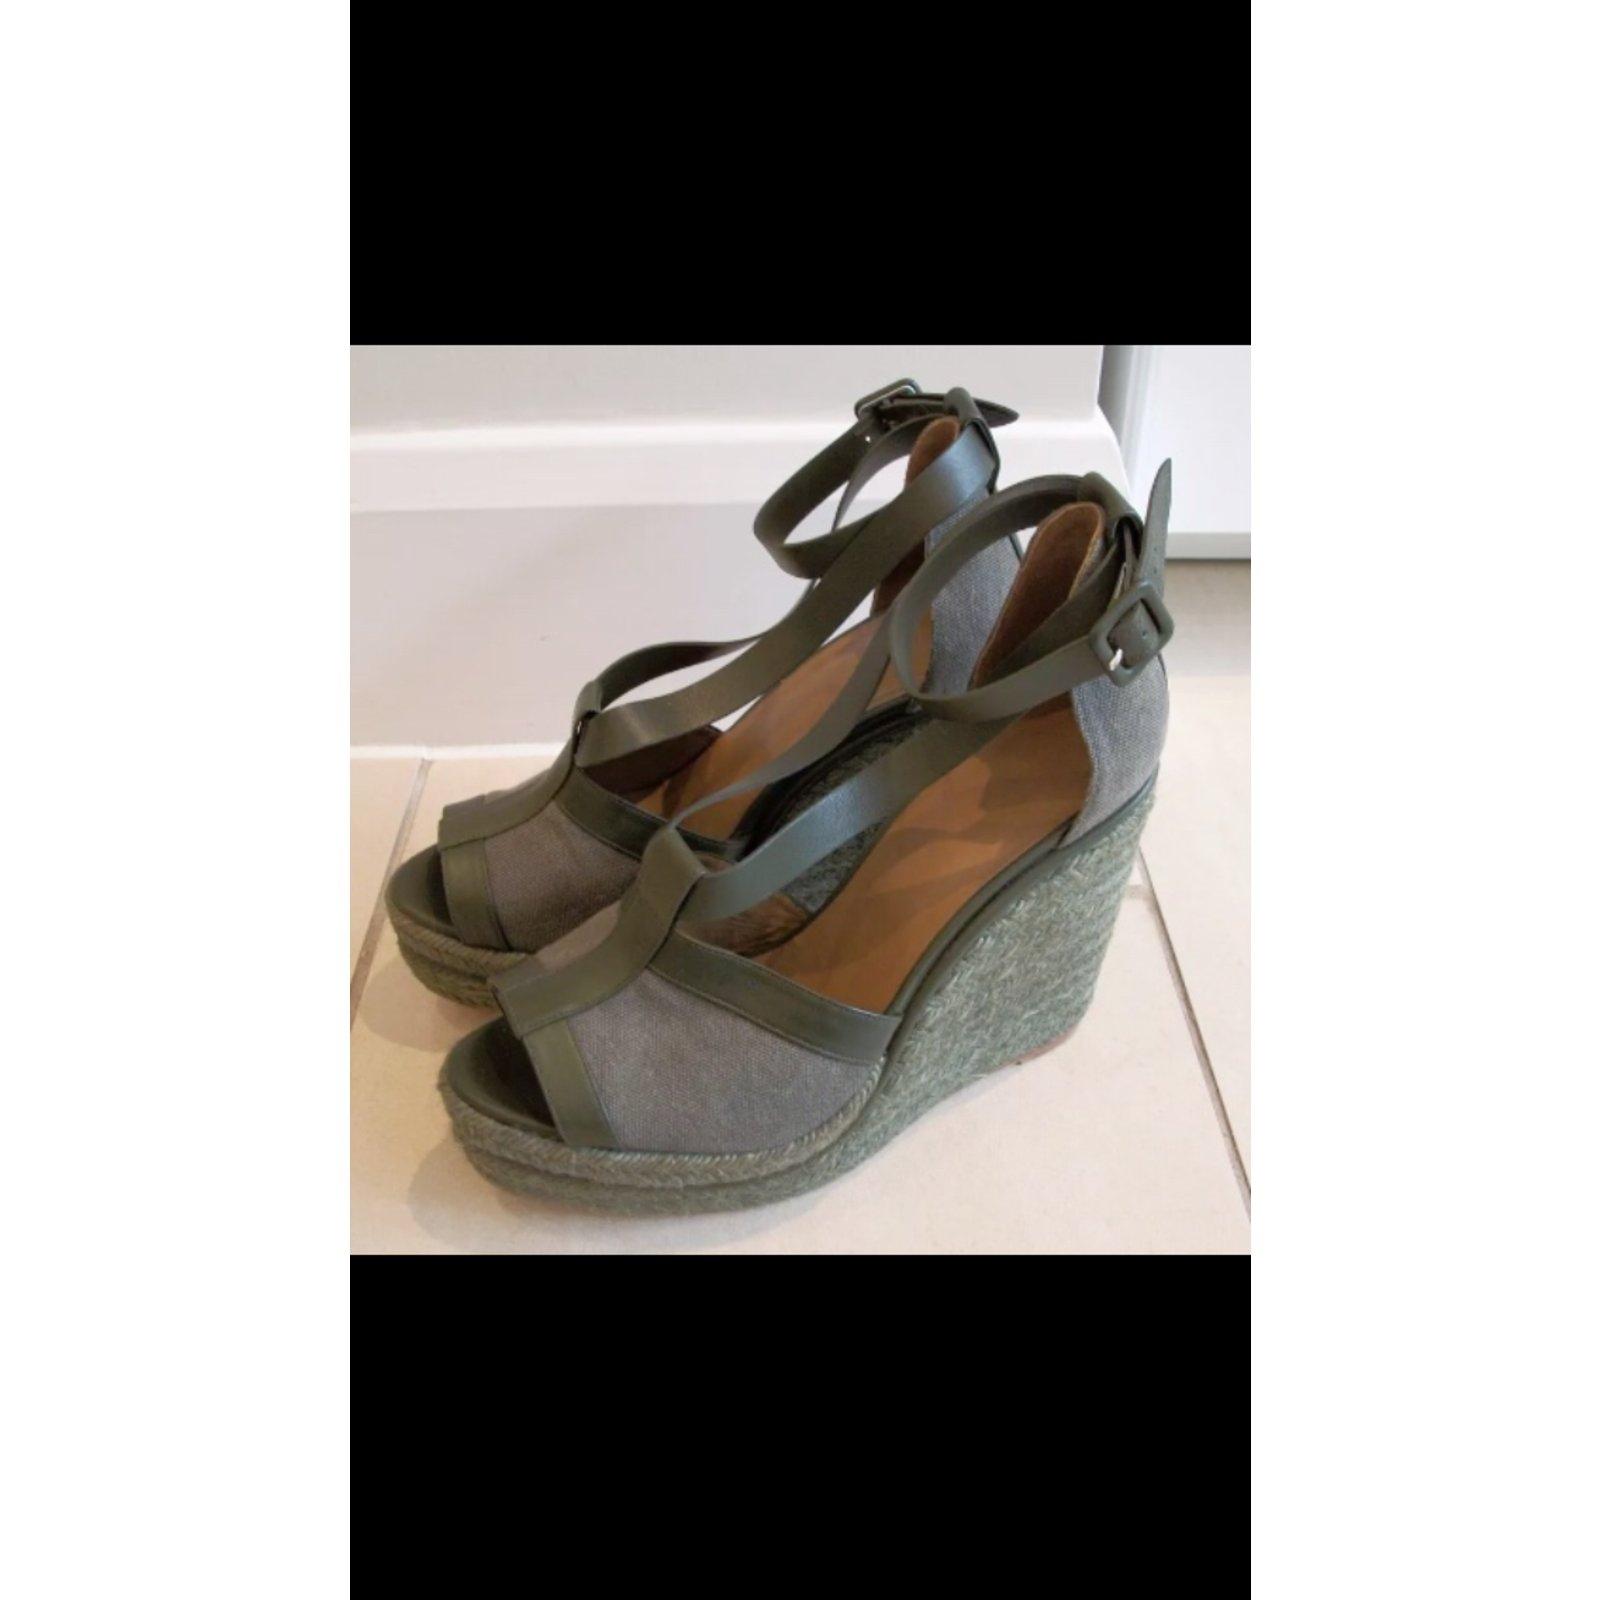 321255b027b4 Hermès Wedge mules Wedge mules Leather